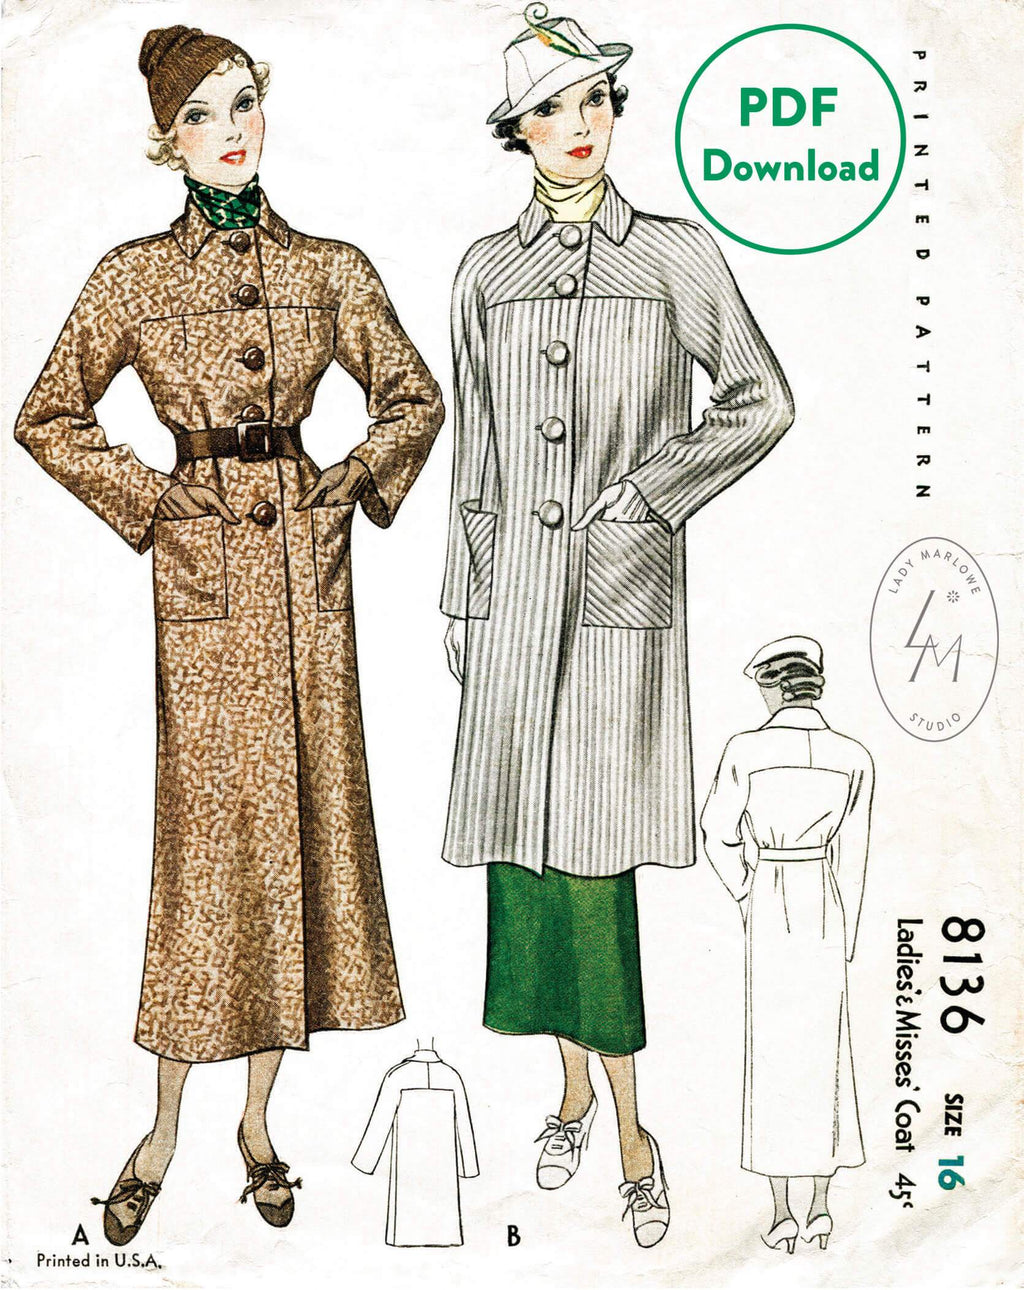 McCall 8136 vintage coat sewing pattern 1930s 30s 1930 outerwear PDF download